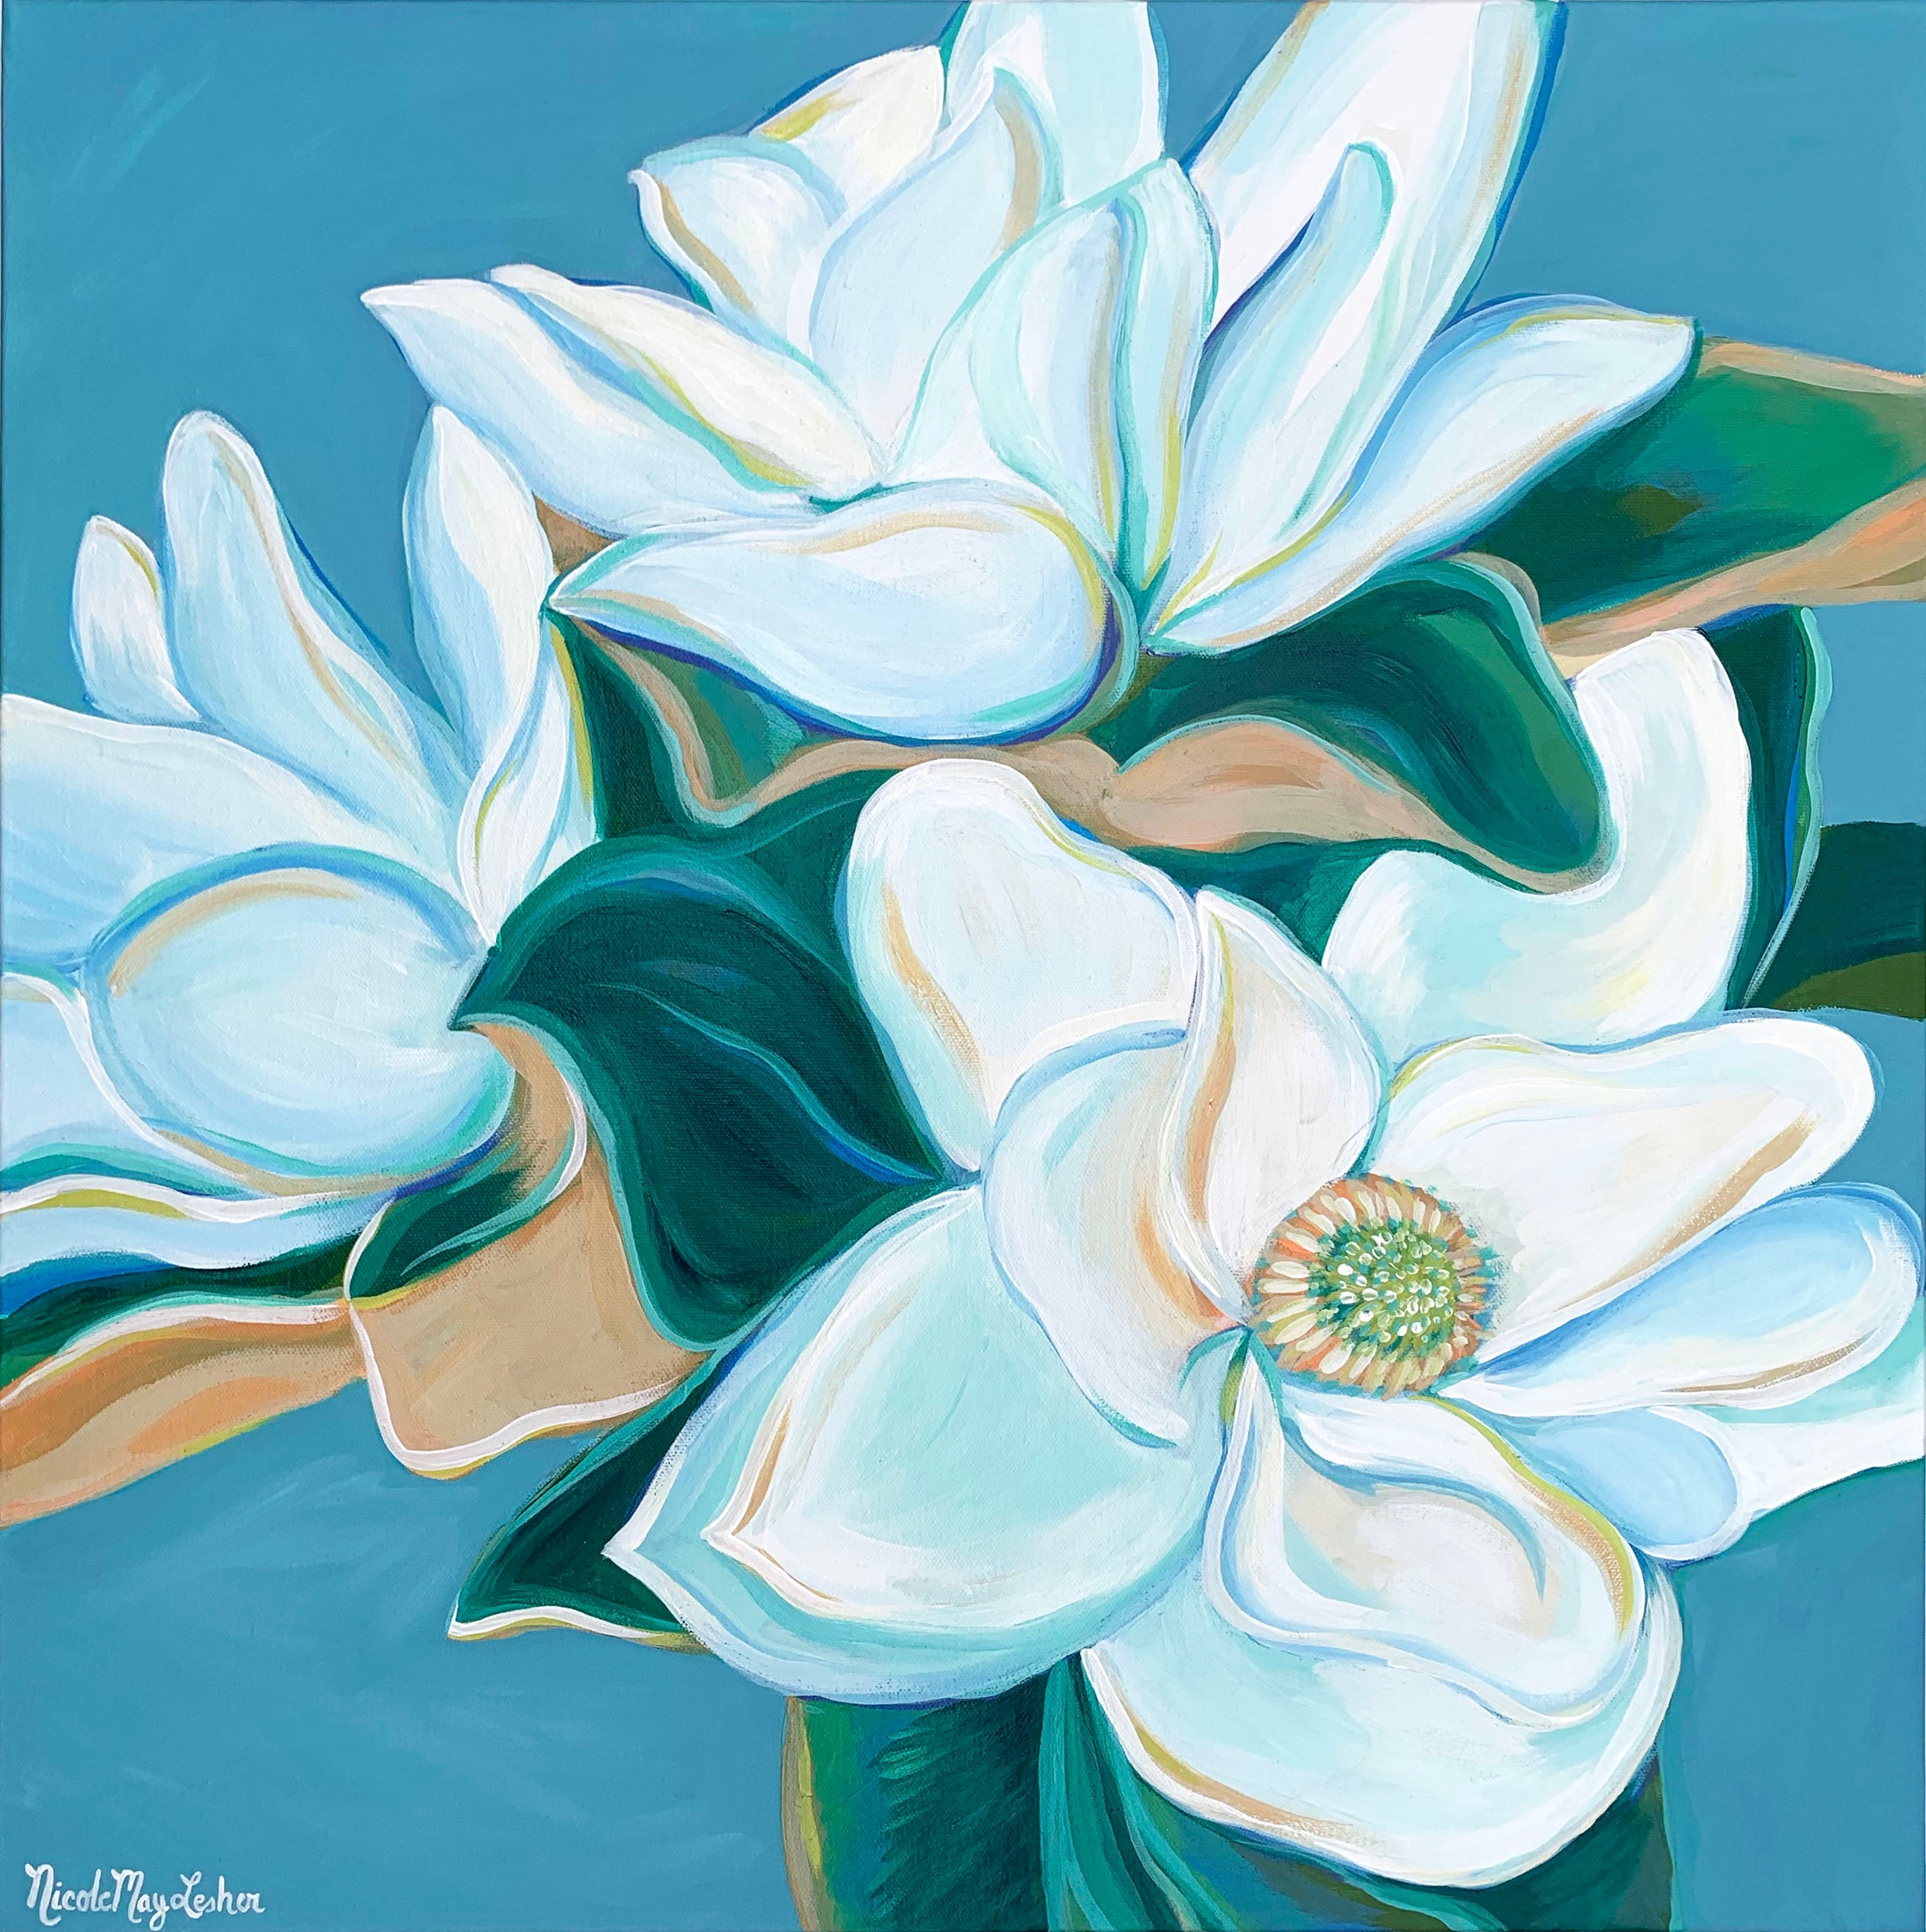 Sweet Magnolias | Original Fine Art Acrylic Magnolia Flower Painting | Wall Art | Nicole May Lesher